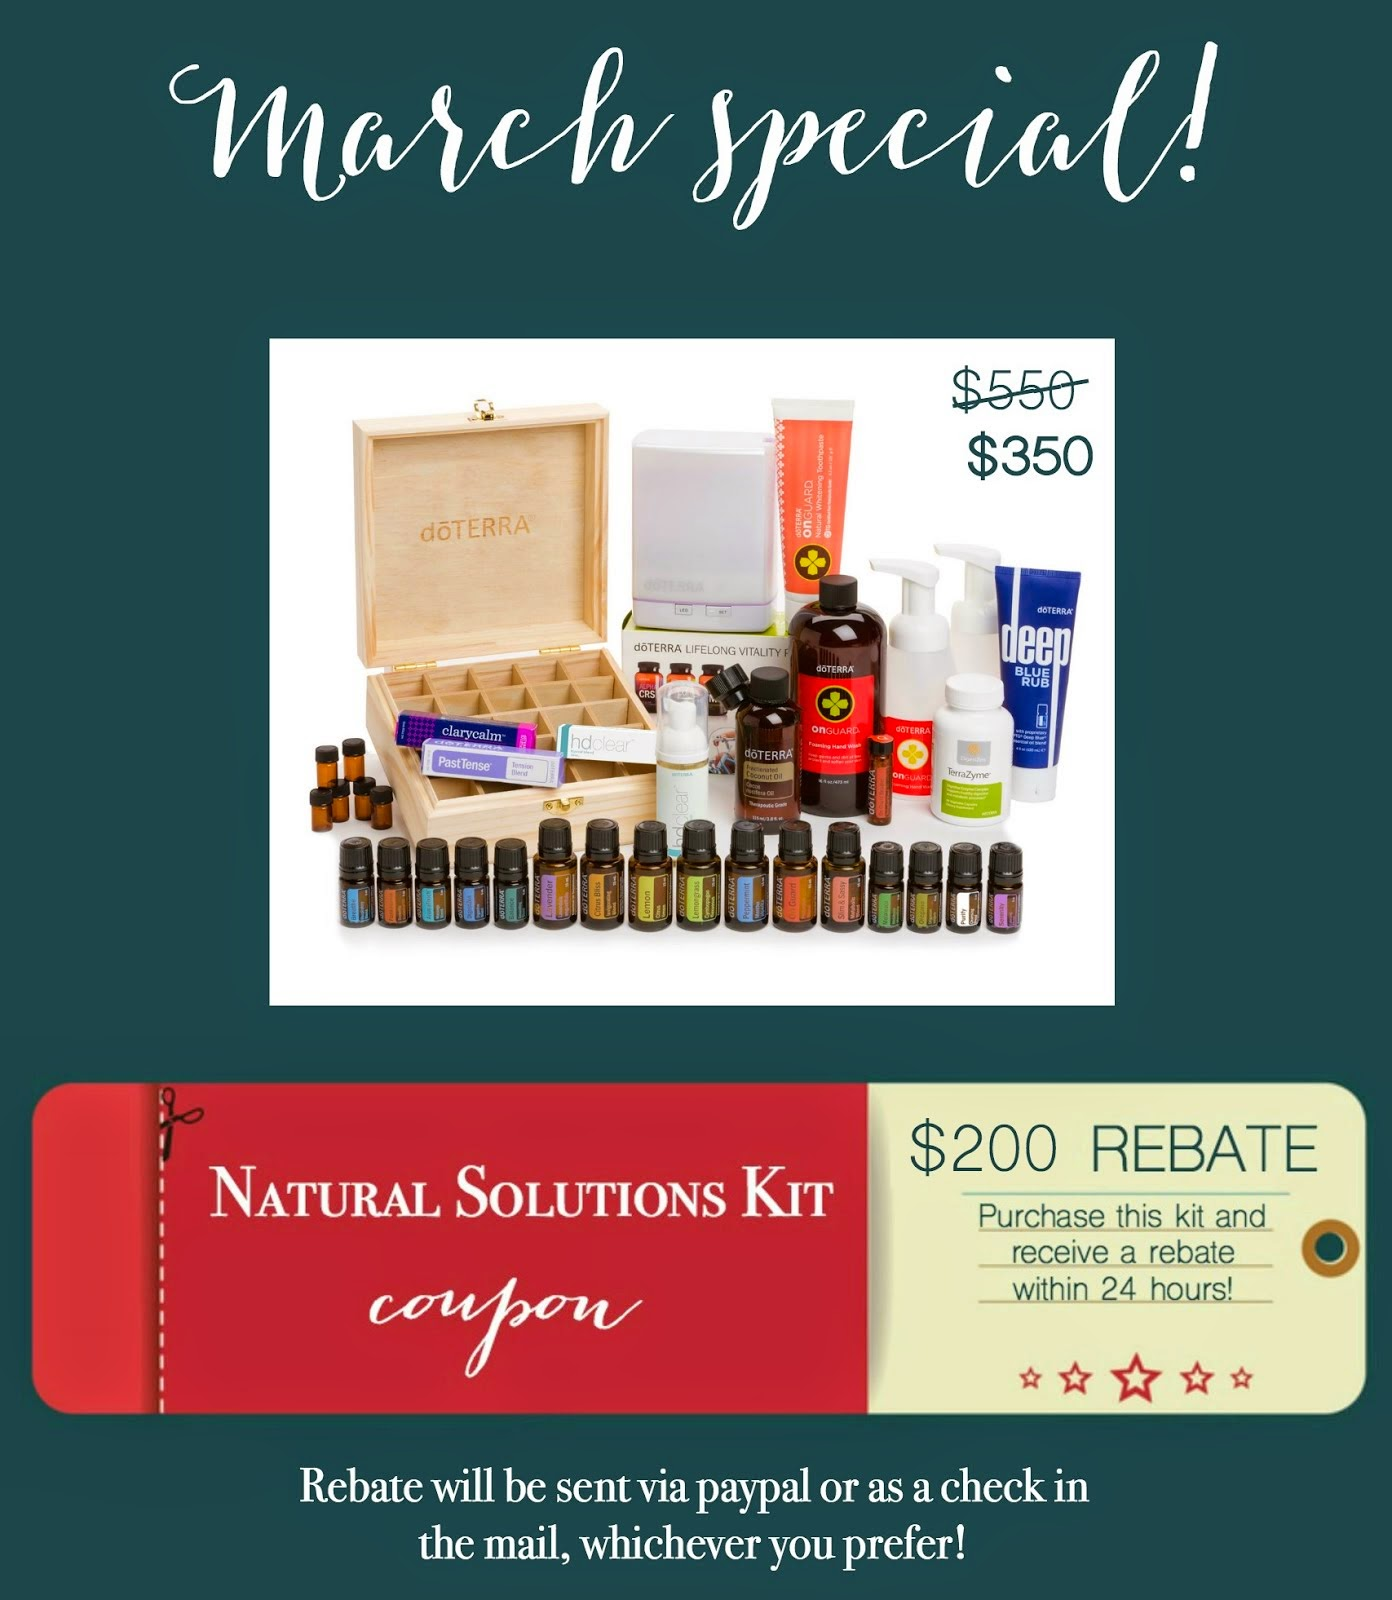 Buy this Kit and Get a $200 Rebate!